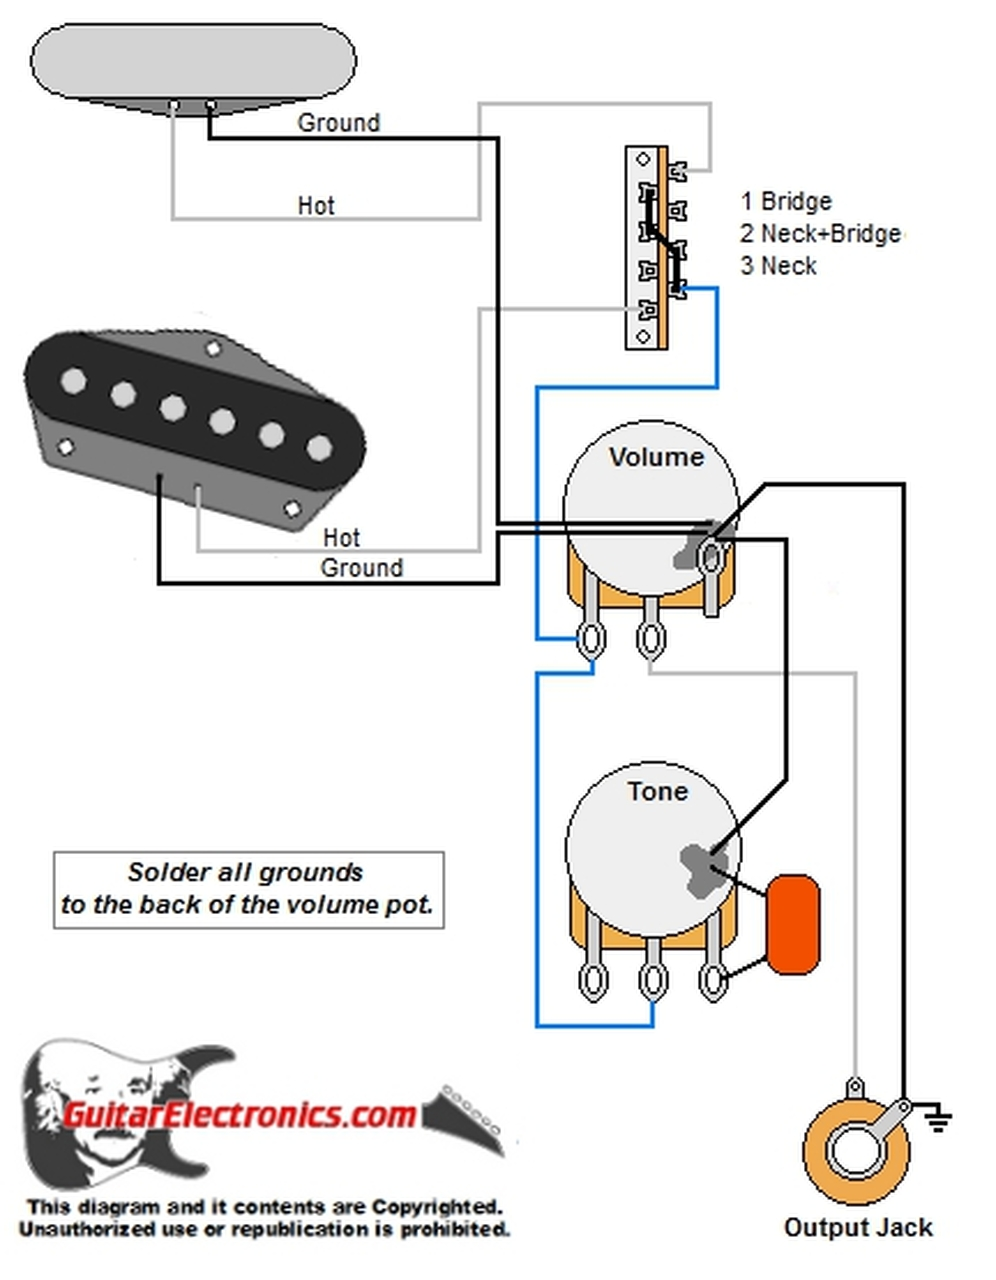 [DHAV_9290]  Tele Style Guitar Wiring Diagram | Fender Pickup Ground Plate Wiring Diagrams |  | Guitar Electronics